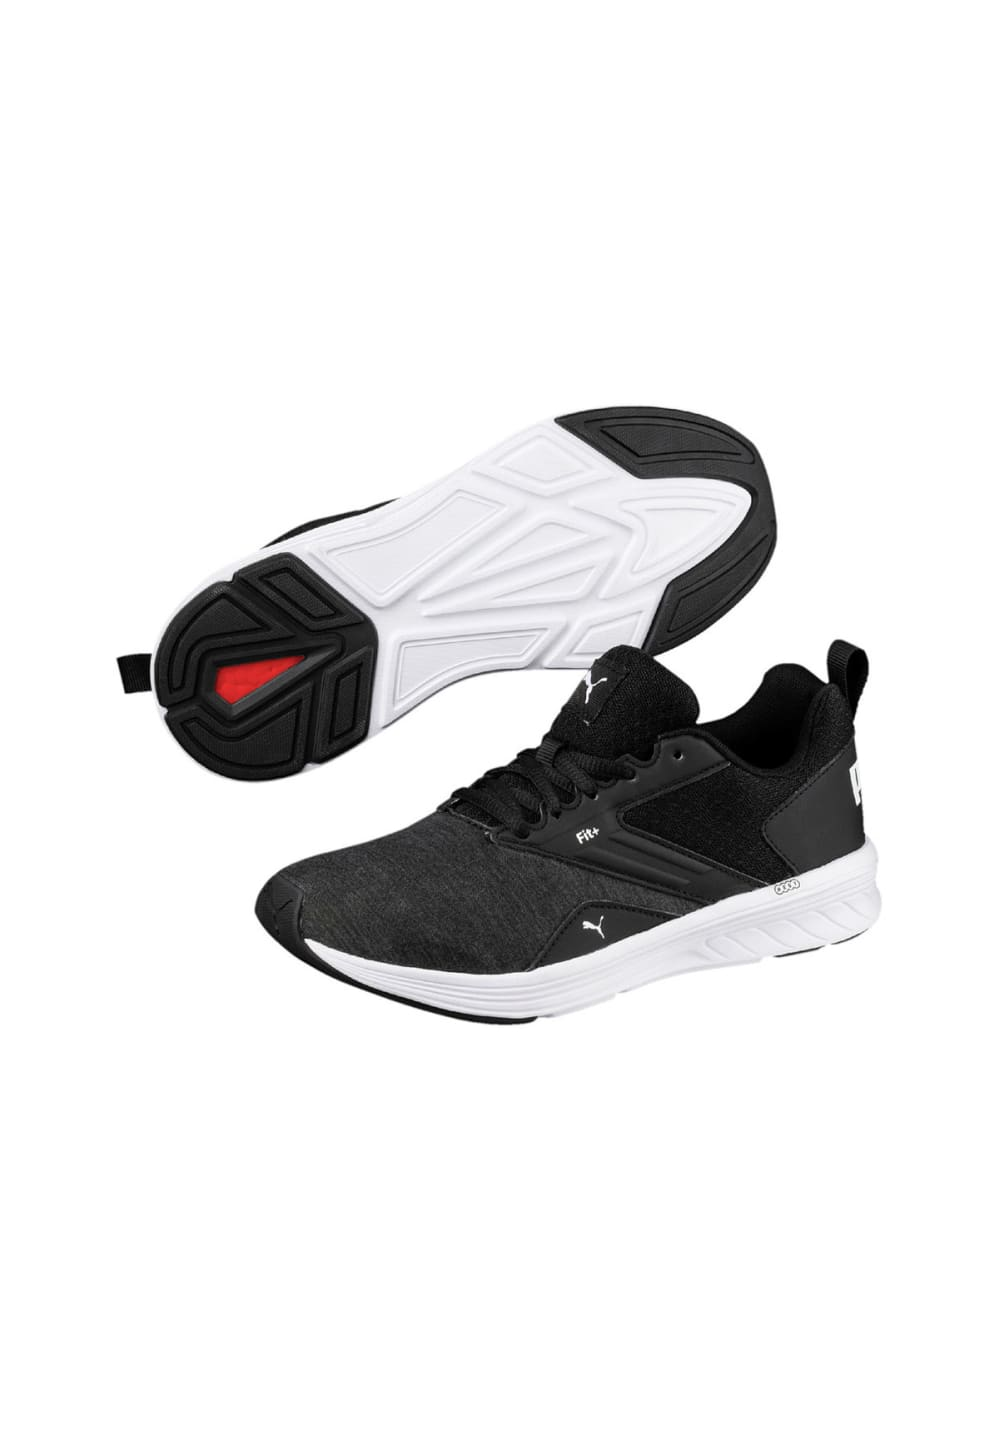 214547dee81 ... Puma Nrgy Comet - Running shoes - Black. Back to Overview. -50%